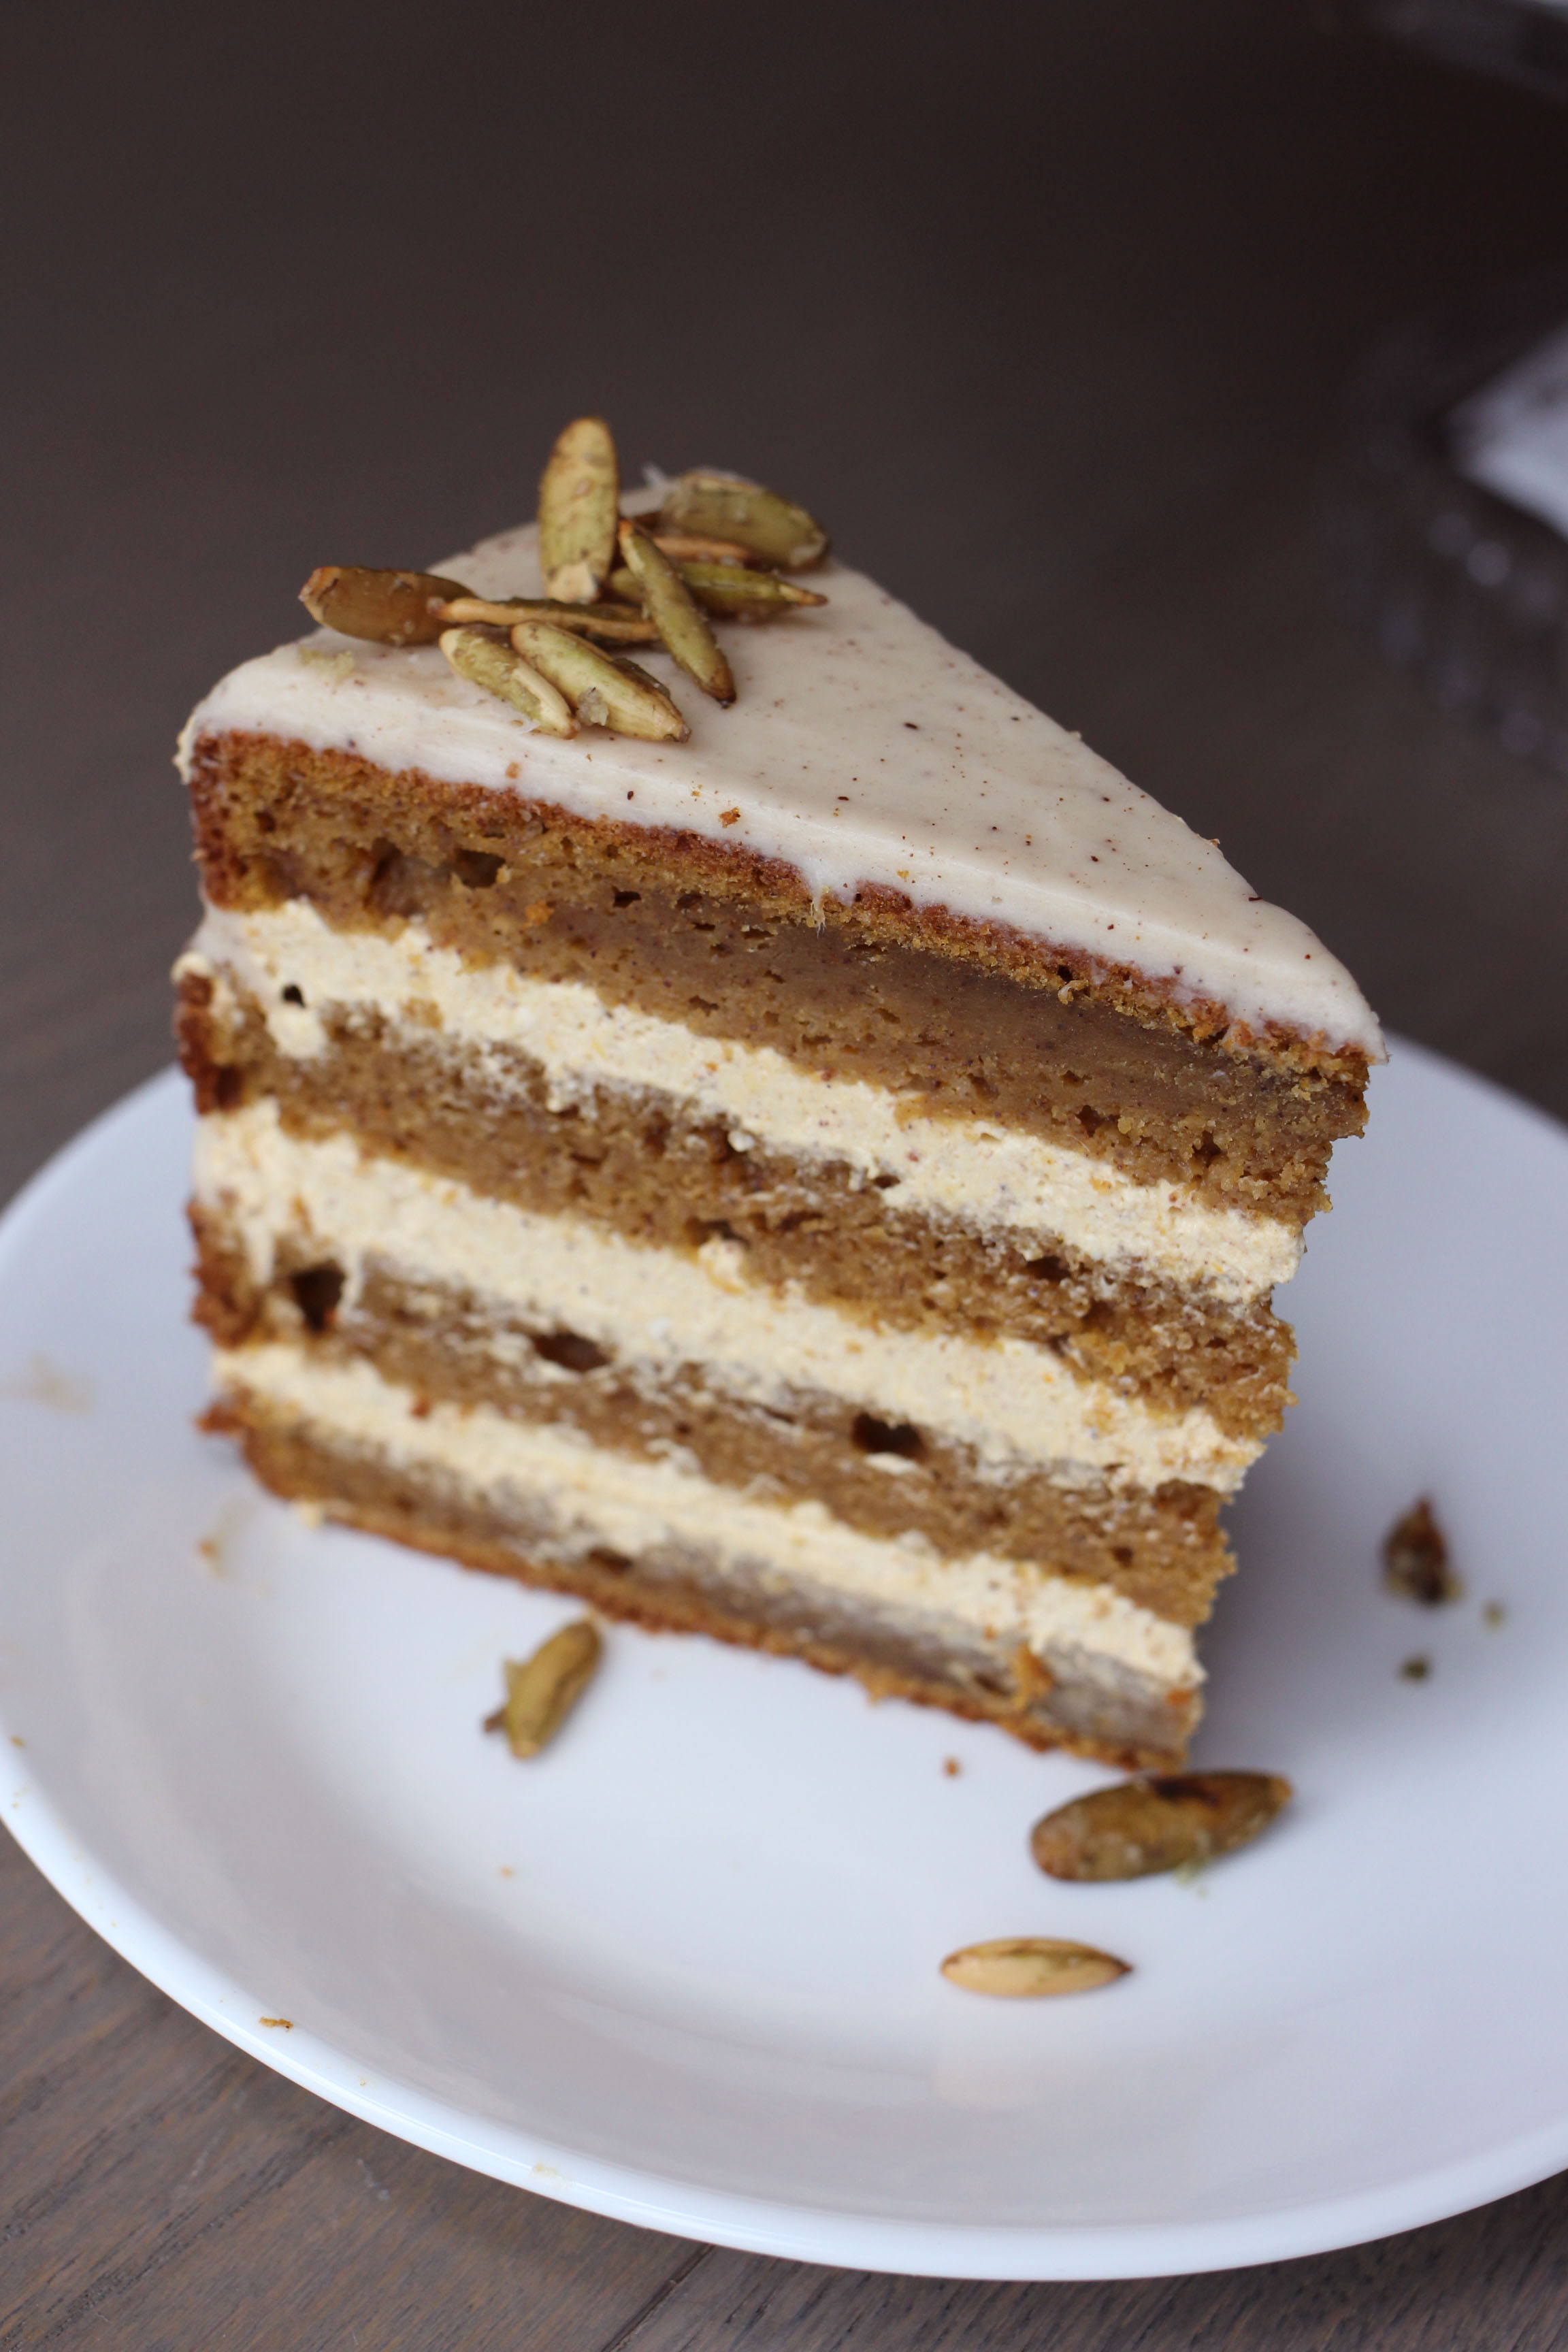 An amazingly decadent four-layer pumpkin spice cake with a no-bake pumpkin cheesecake filling, topped with a to-die-for brown butter cream cheese frosting.